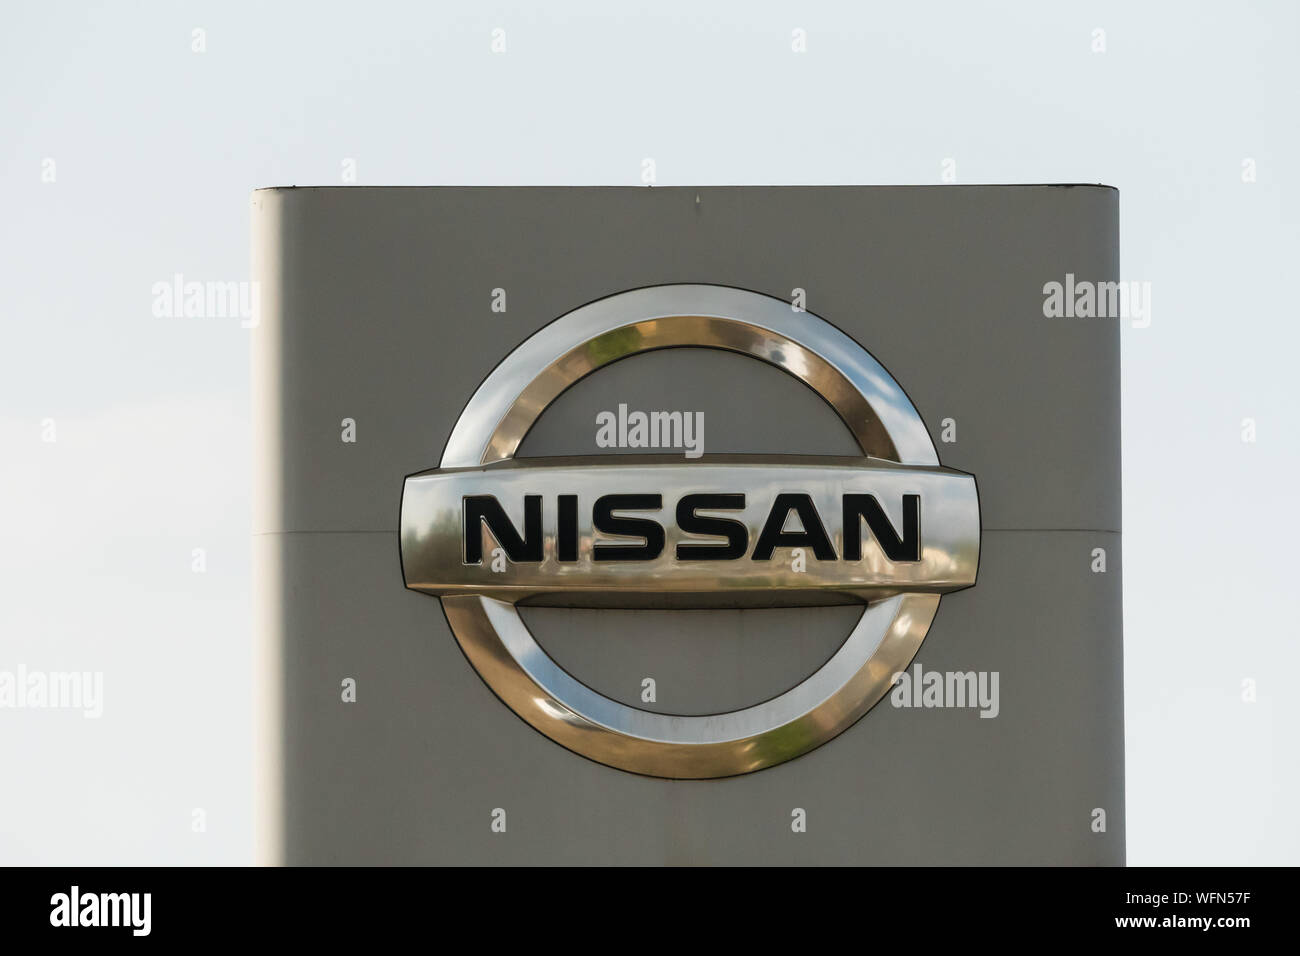 Nissan automobile manufacturer sign board with logo against a blue sky in Johannesburg, Gauteng, South Africa Stock Photo